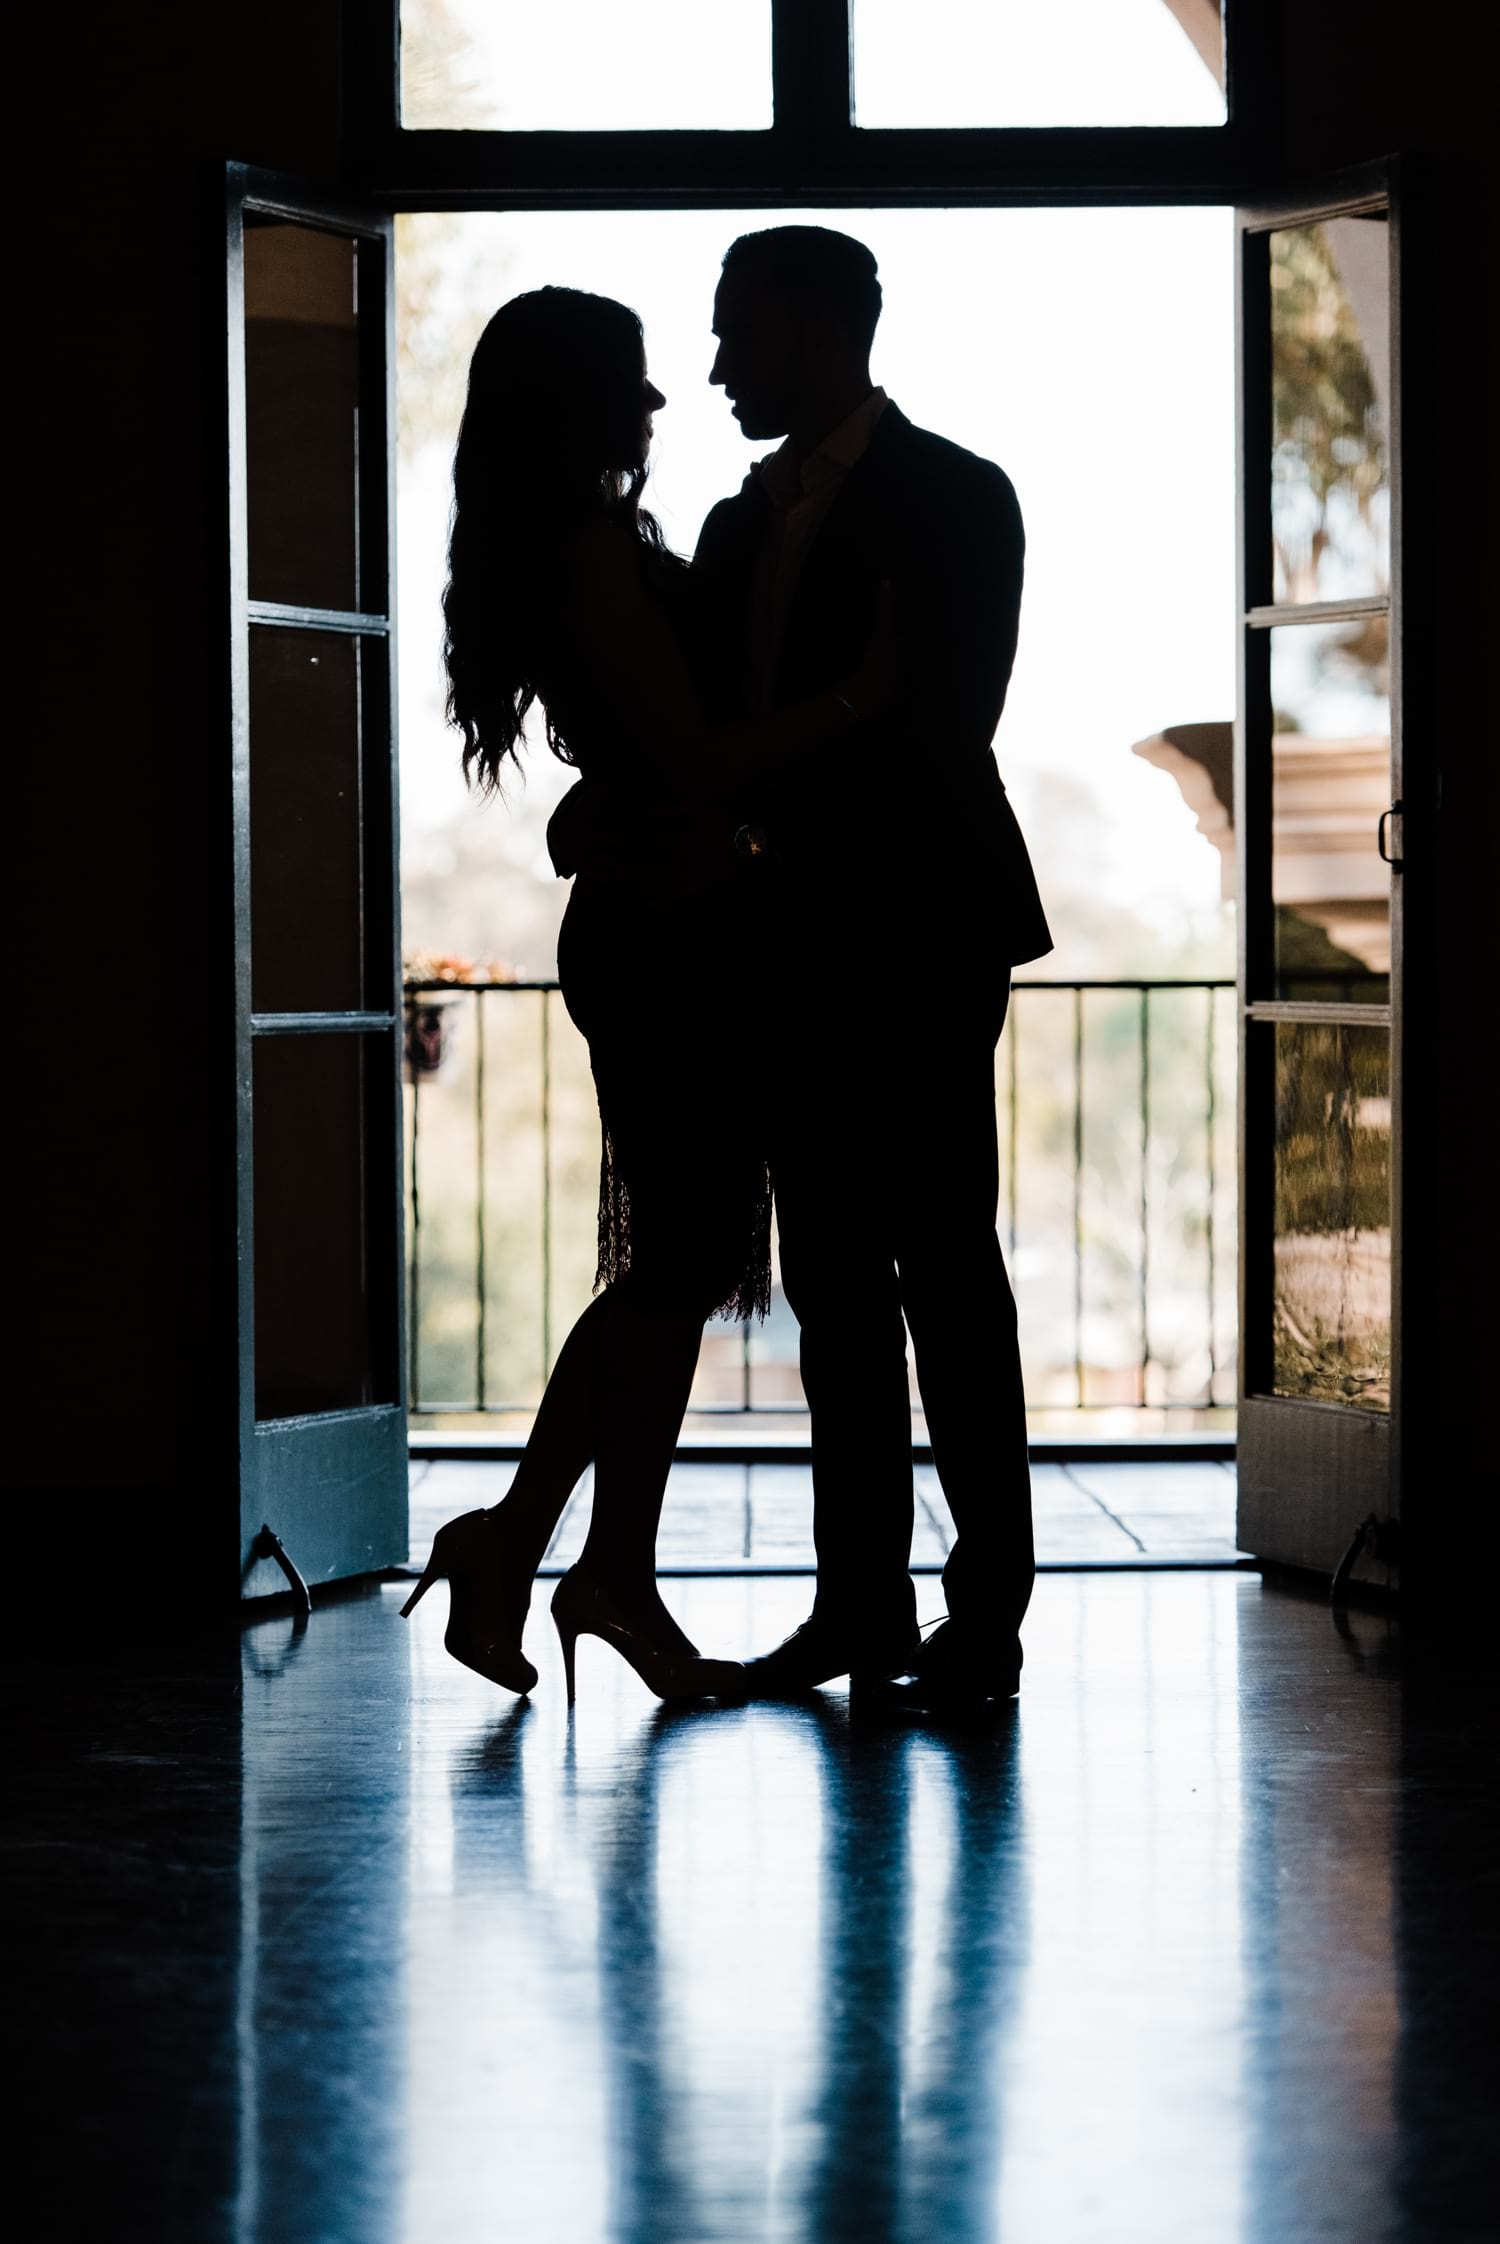 Silhouette of couple in doorway at Balboa Park.